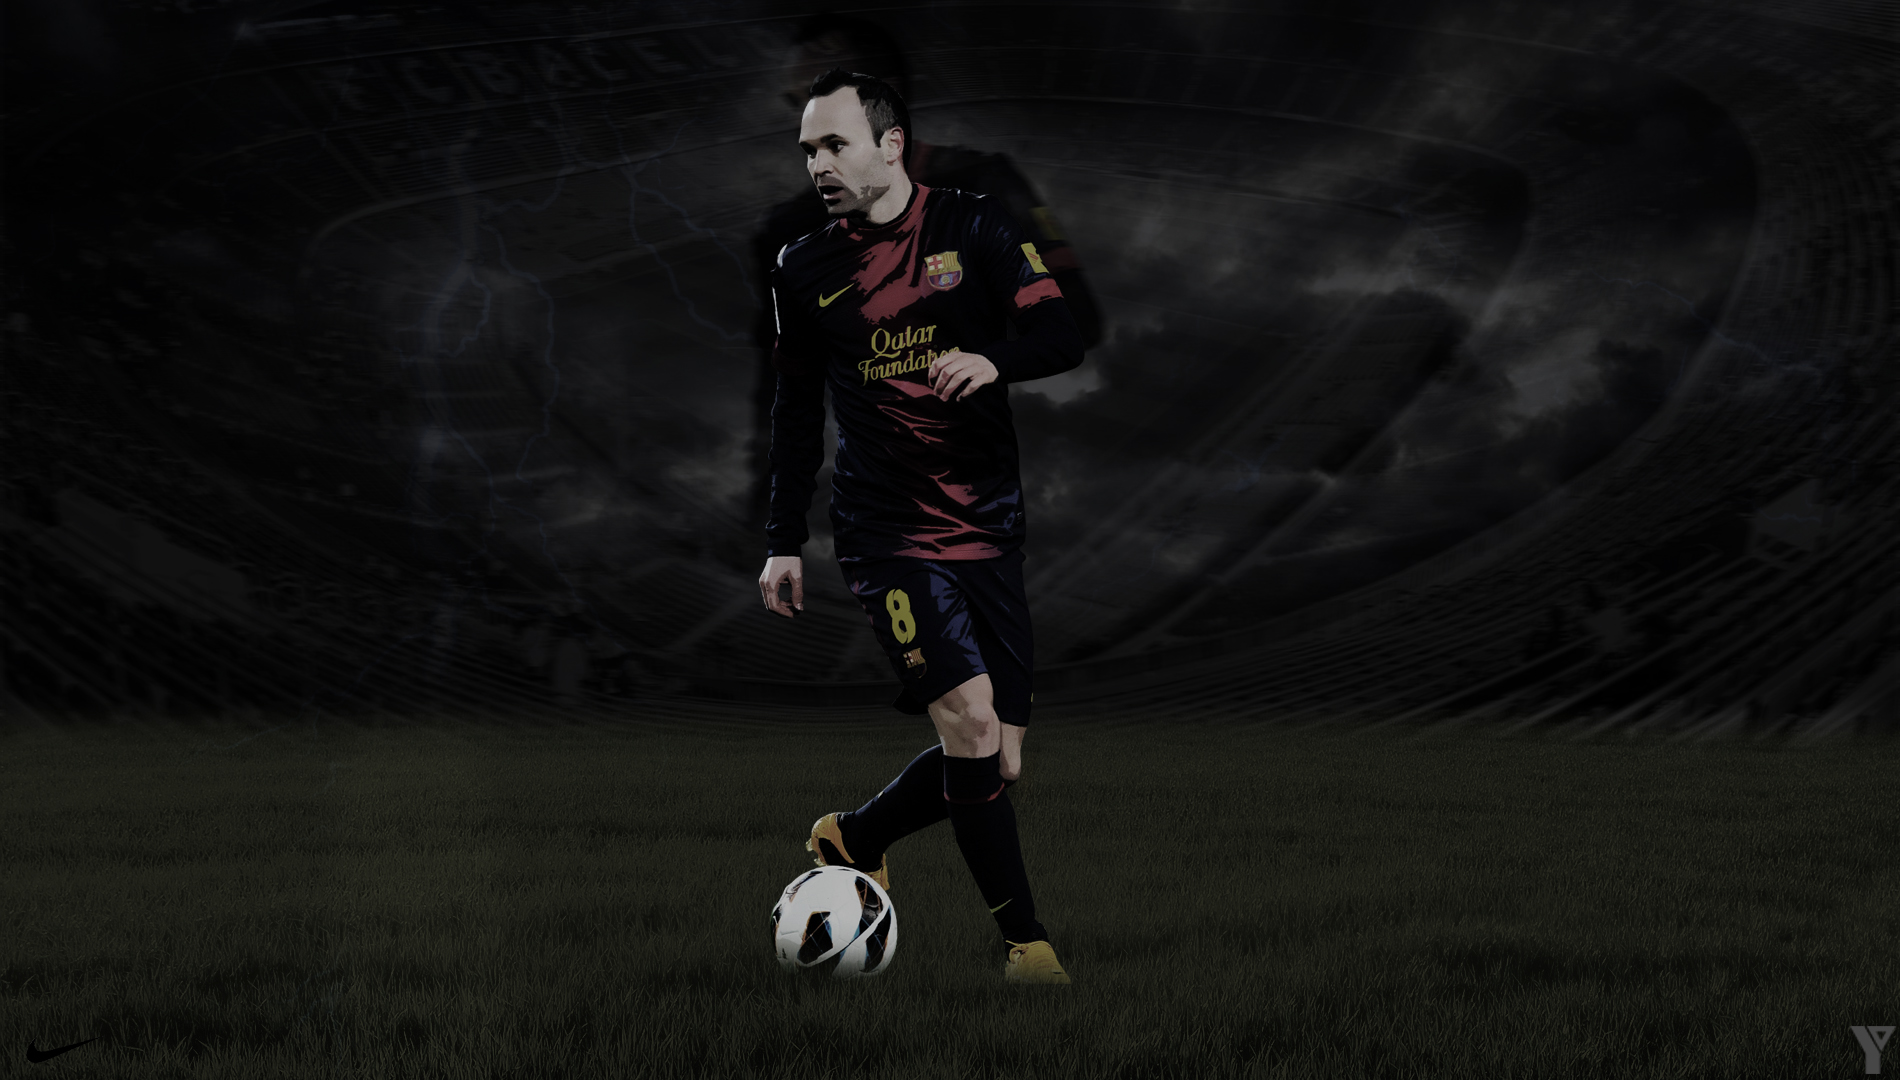 Iniesta Wallpaper